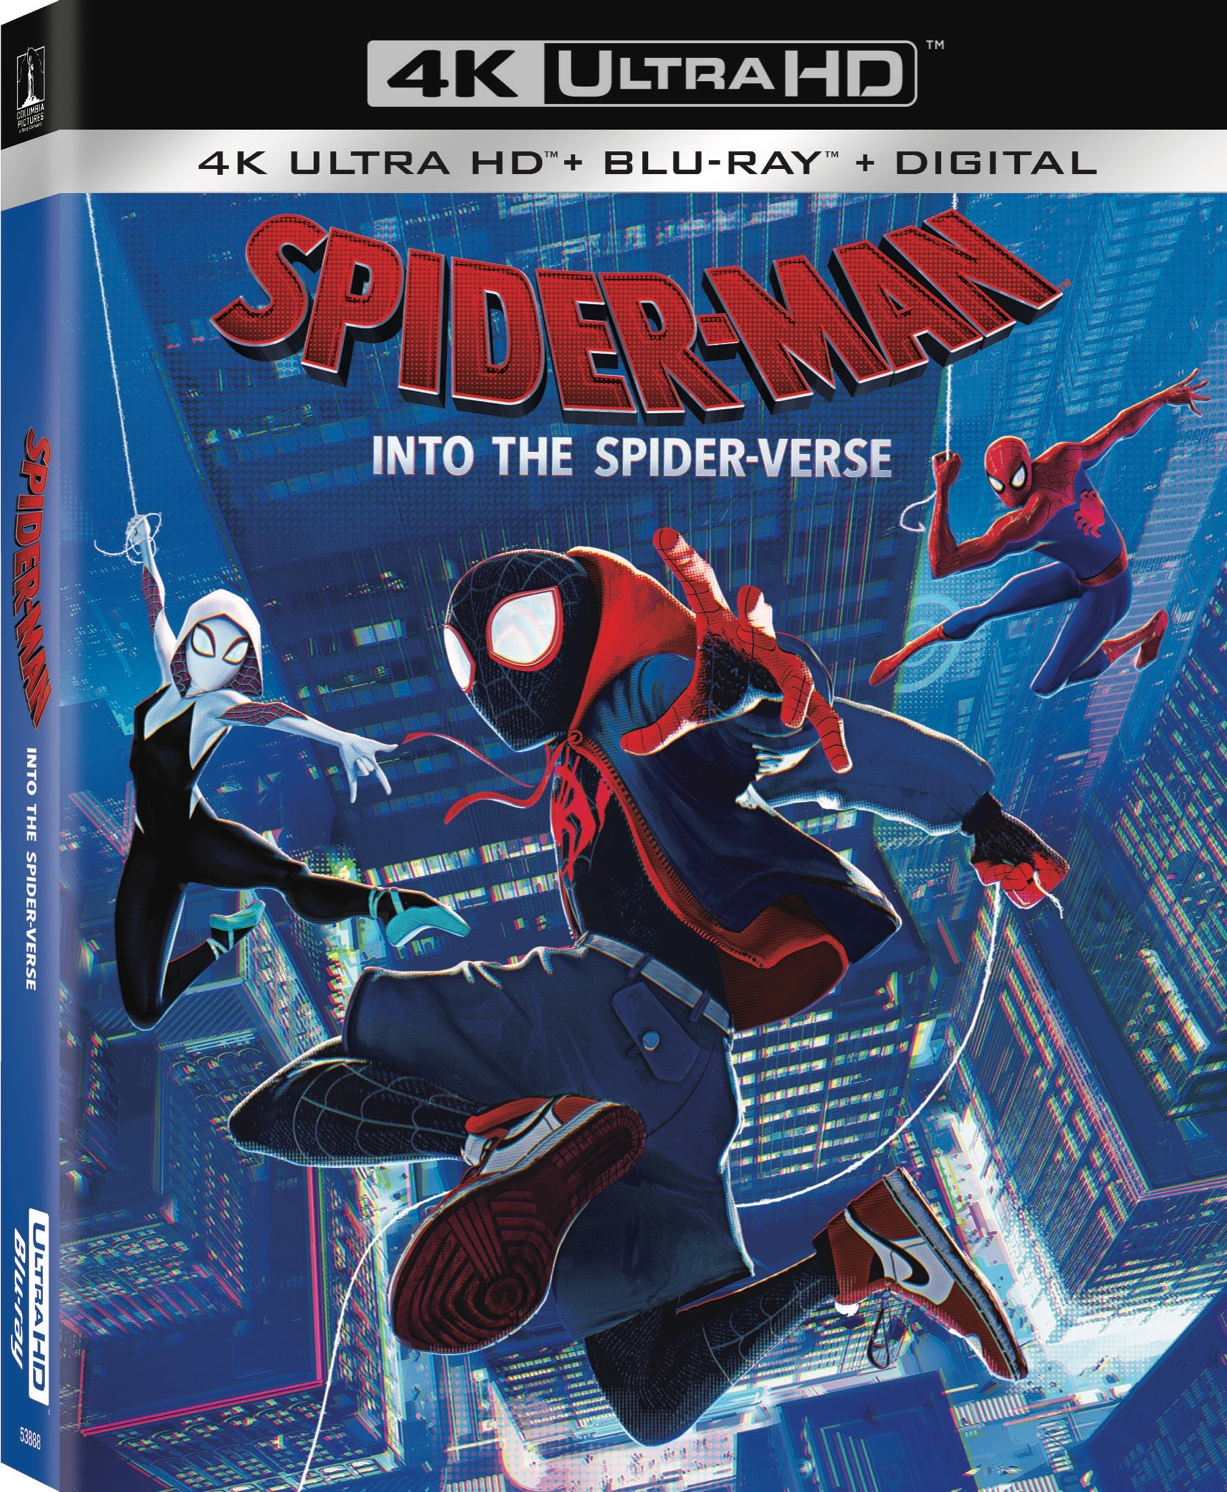 Spider Man Into The Spider Verse Arrives On Digital 2 26 And 4k Blu Ray Dvd 3 19 Mommy S Block Party